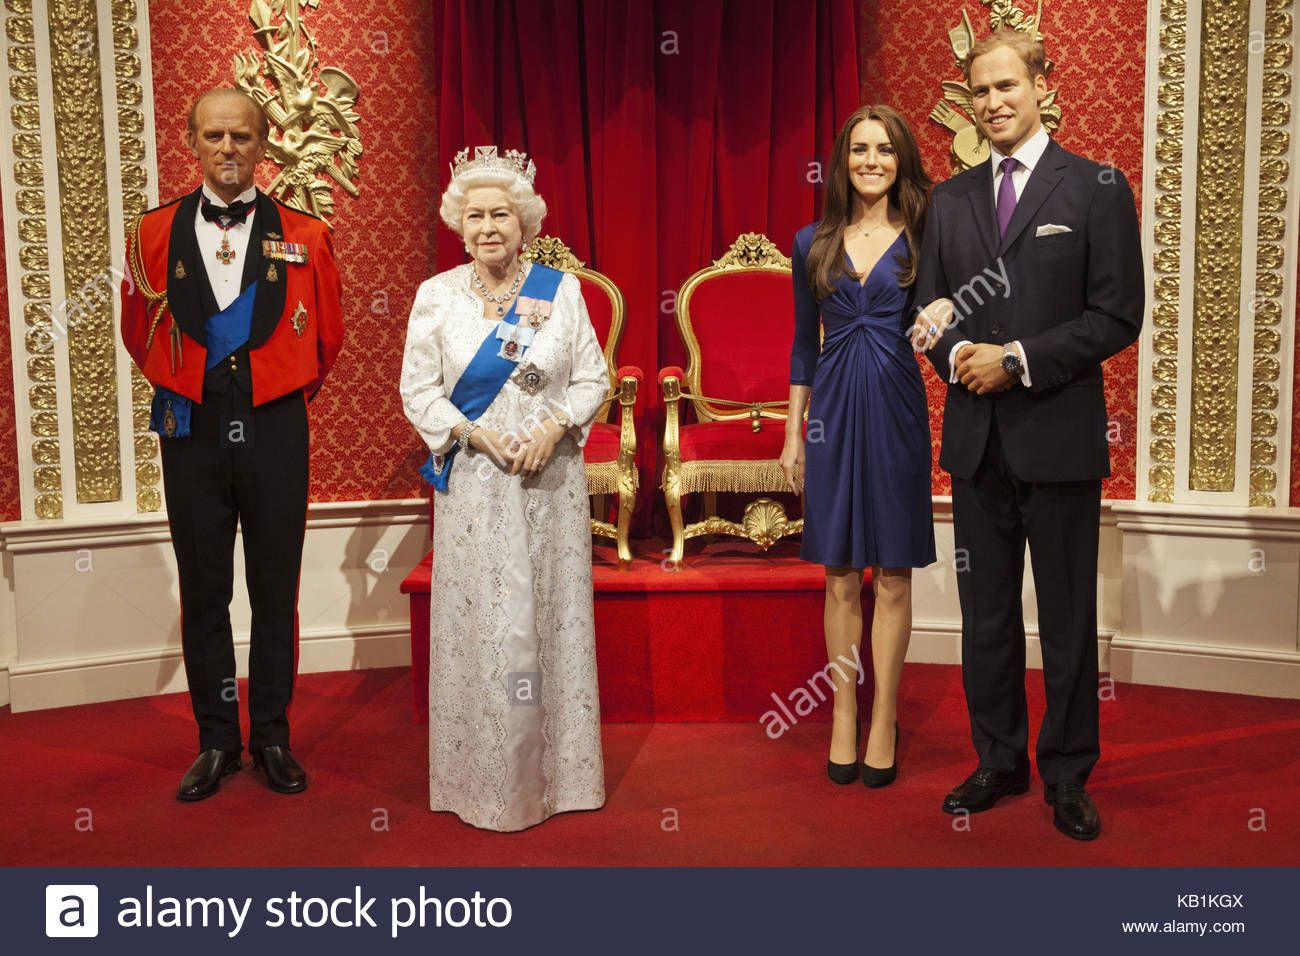 Download This Stock Image England London Madame Tussauds Wax Figures Members Of The British Royal Family Kb1kgx From Alamy S Librar Museo De Cera Museos